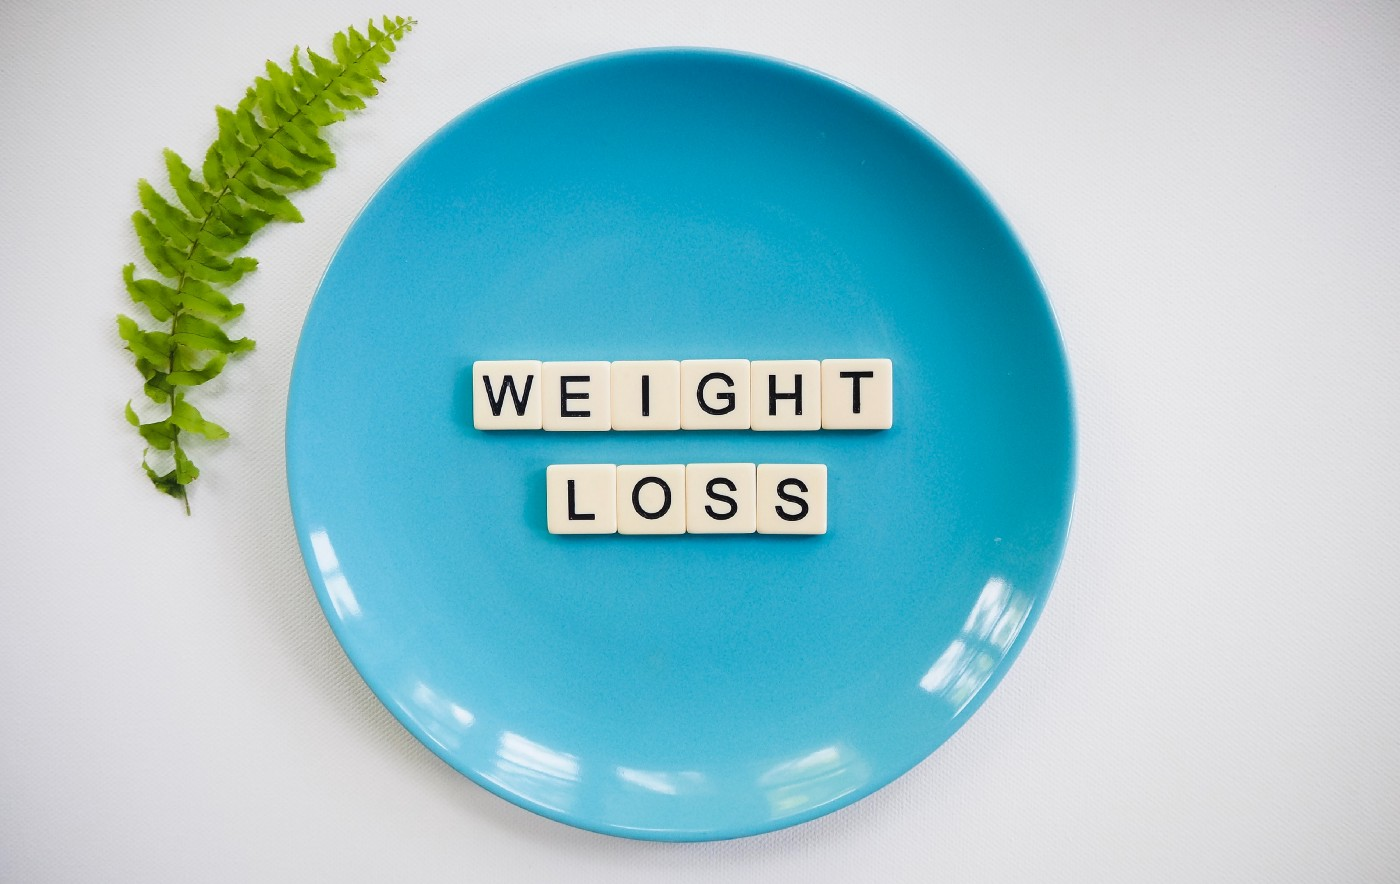 Image Of Clearly Written Word Weight Loss